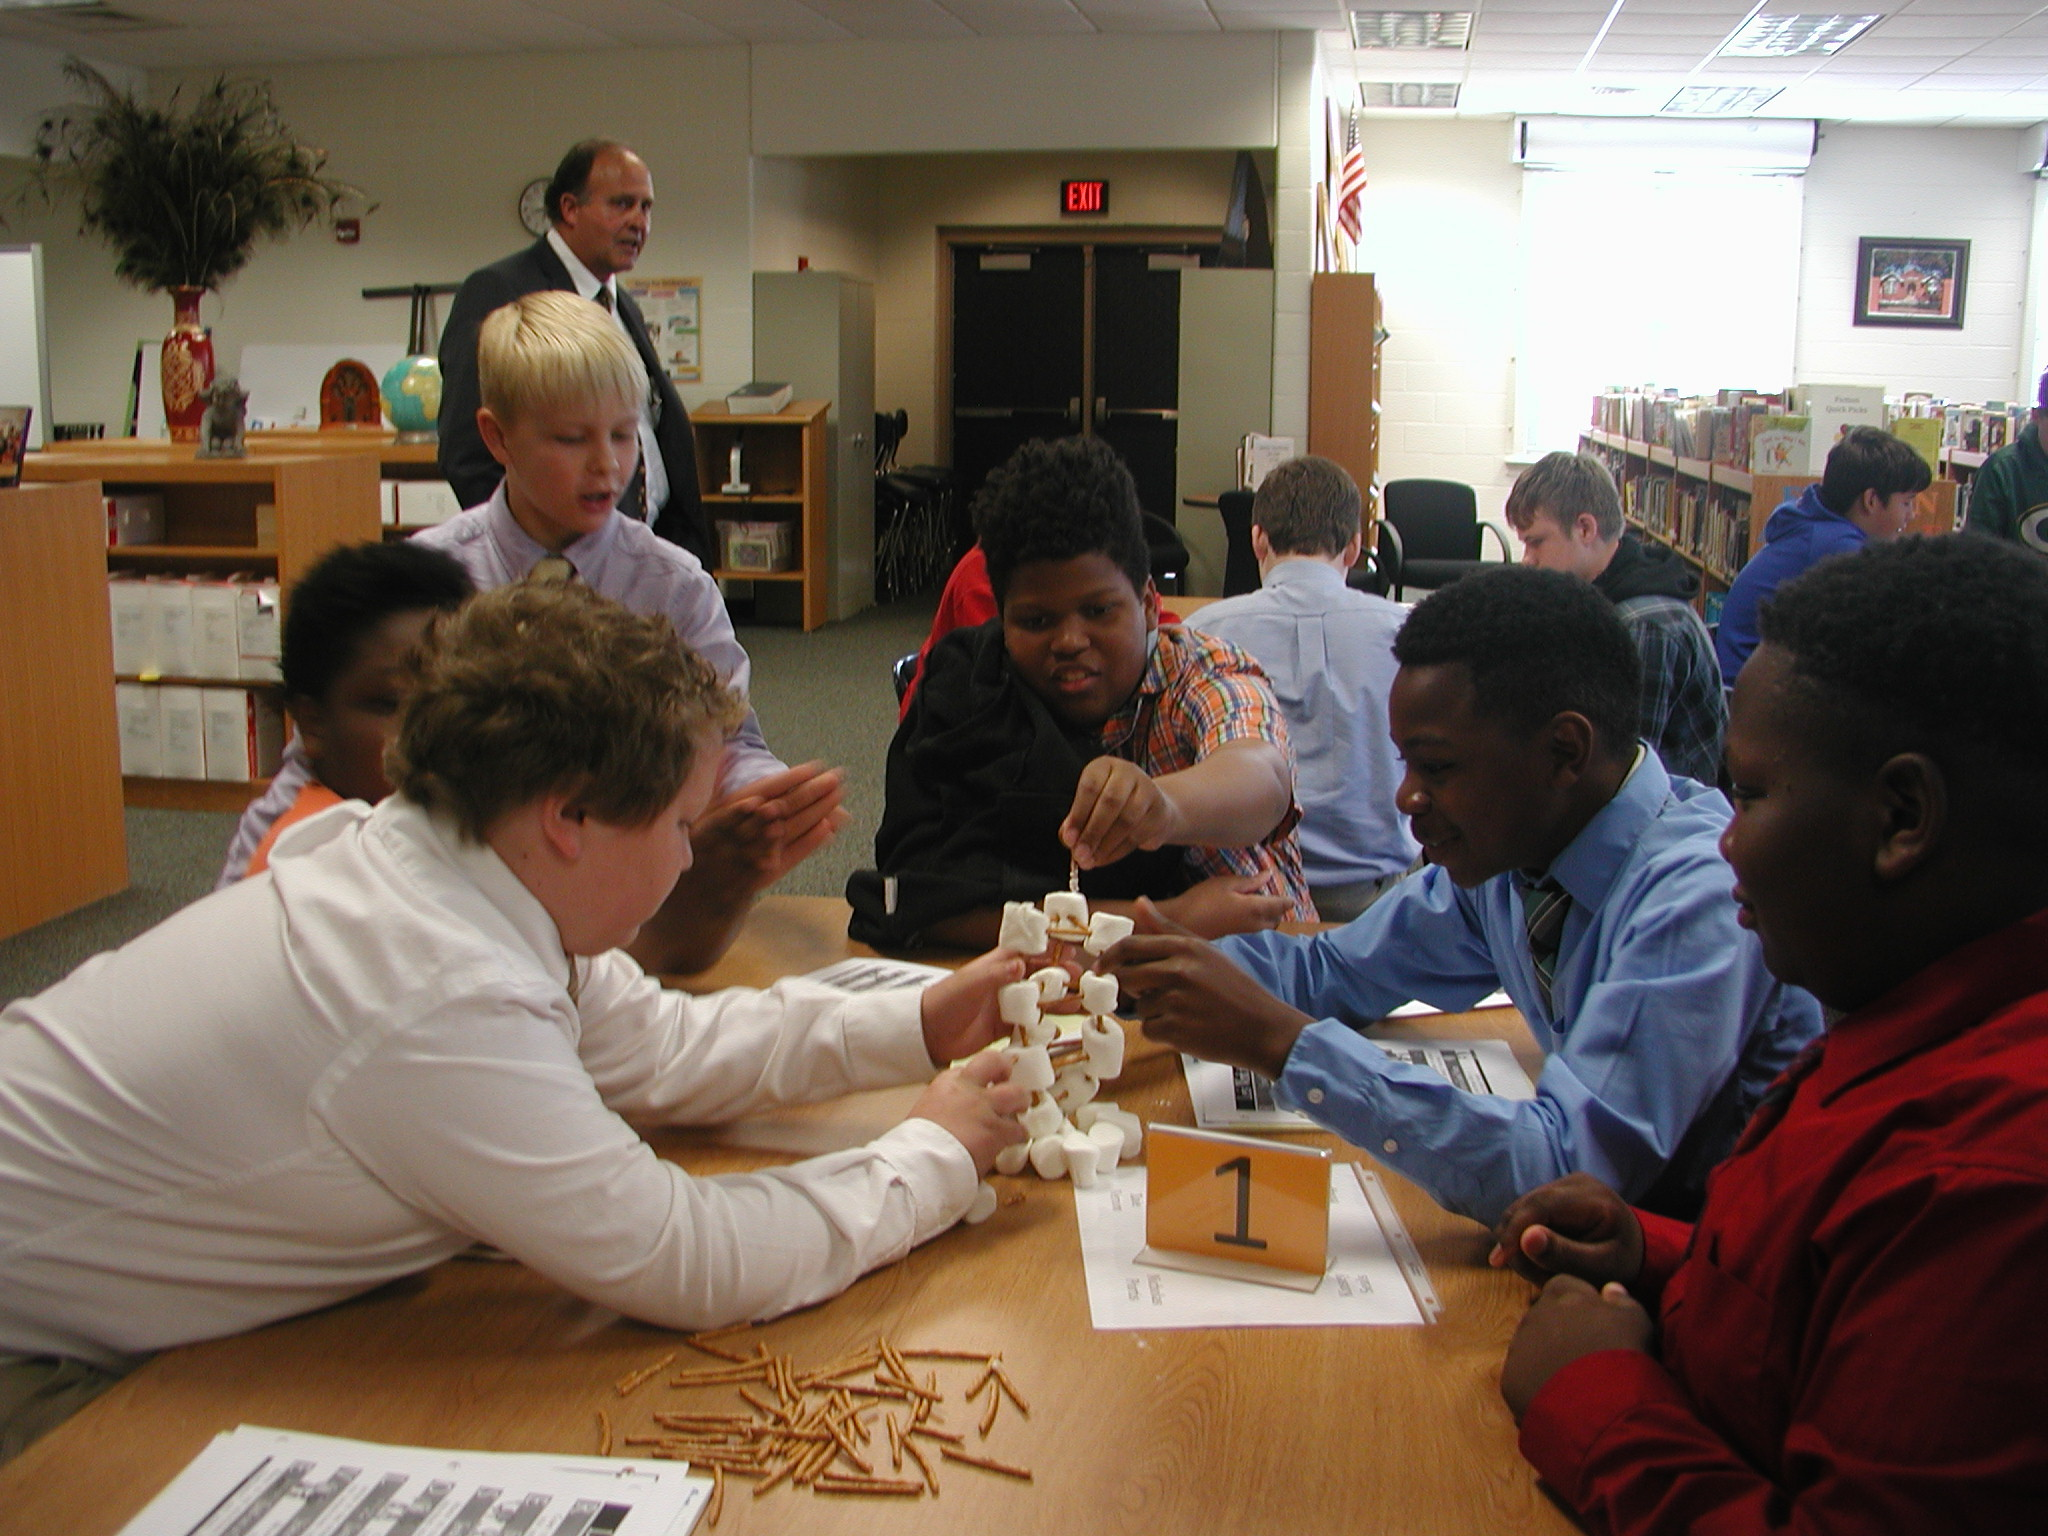 Sponsor, Anthony Roley, observes the boys constructing their marshmallow and pretzel towers.